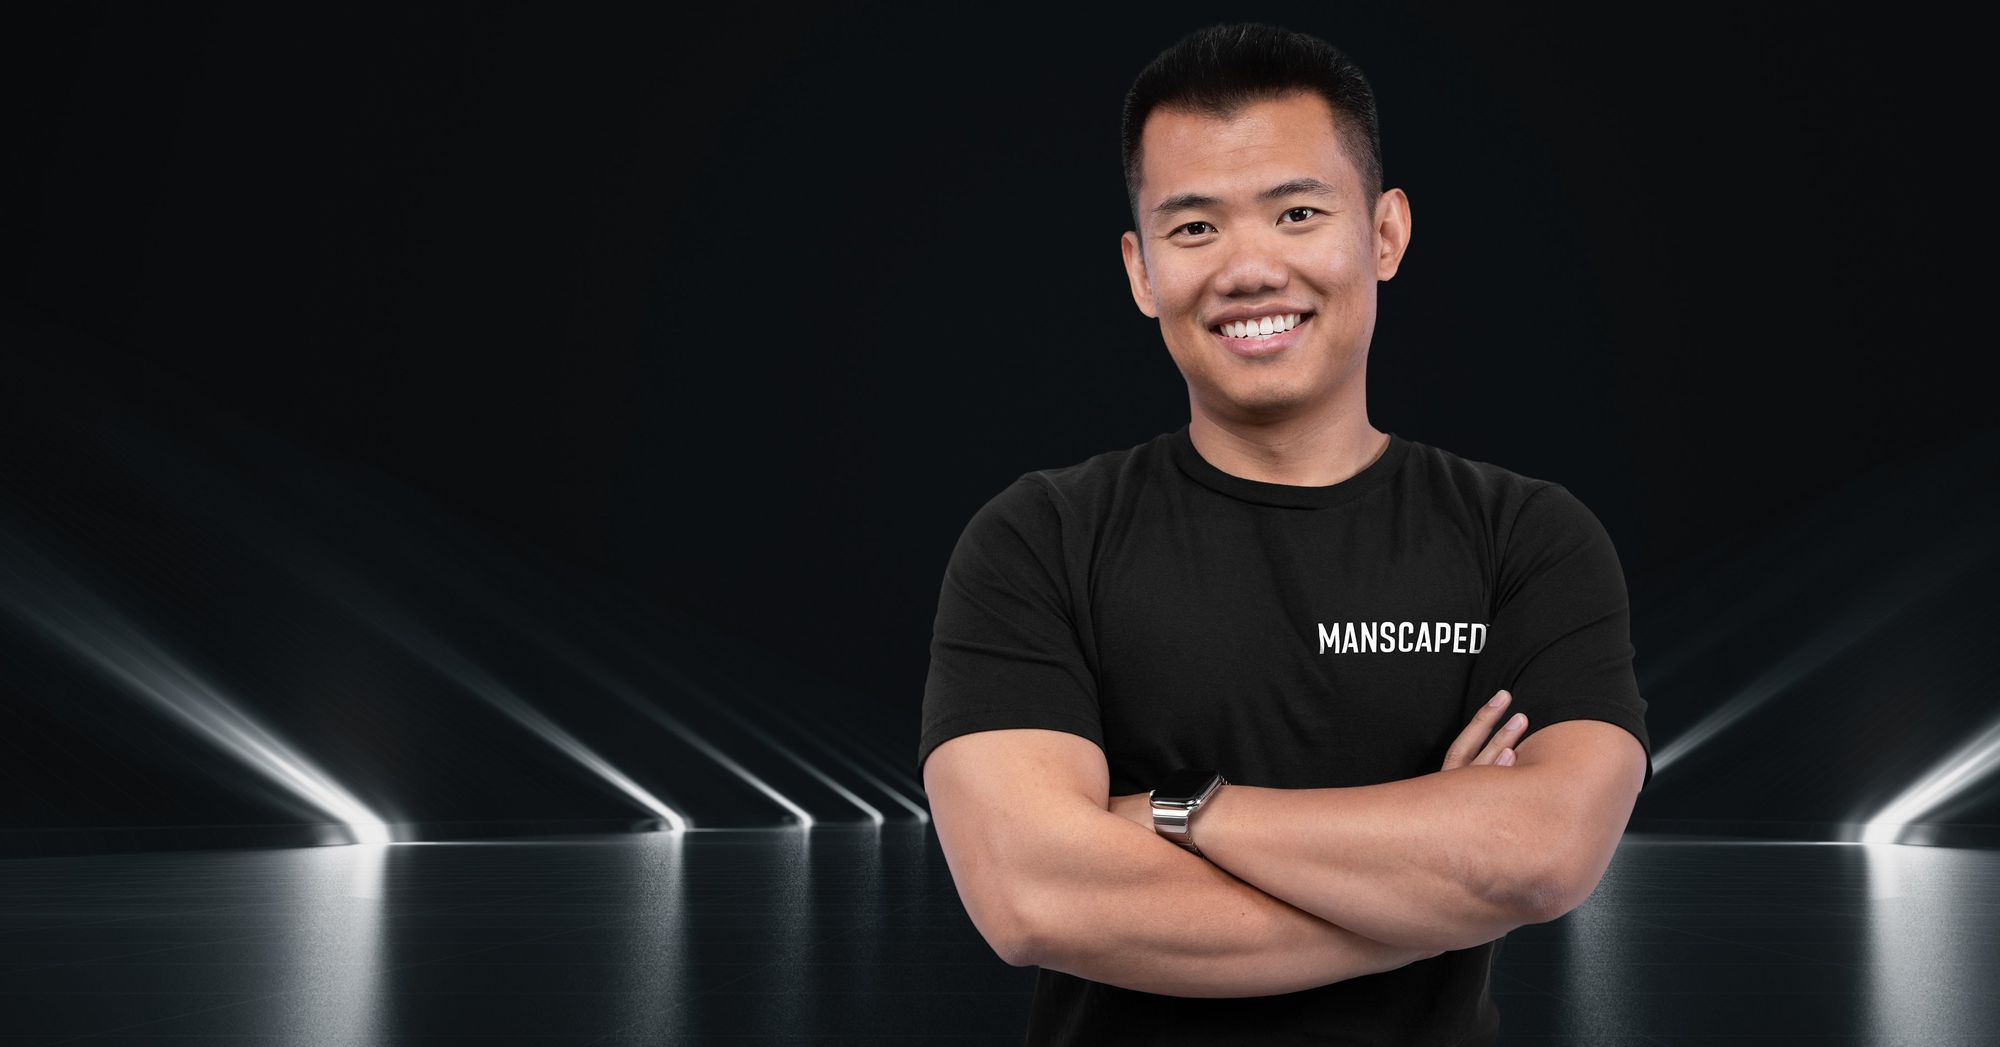 Manscaped Founder Paul Tran